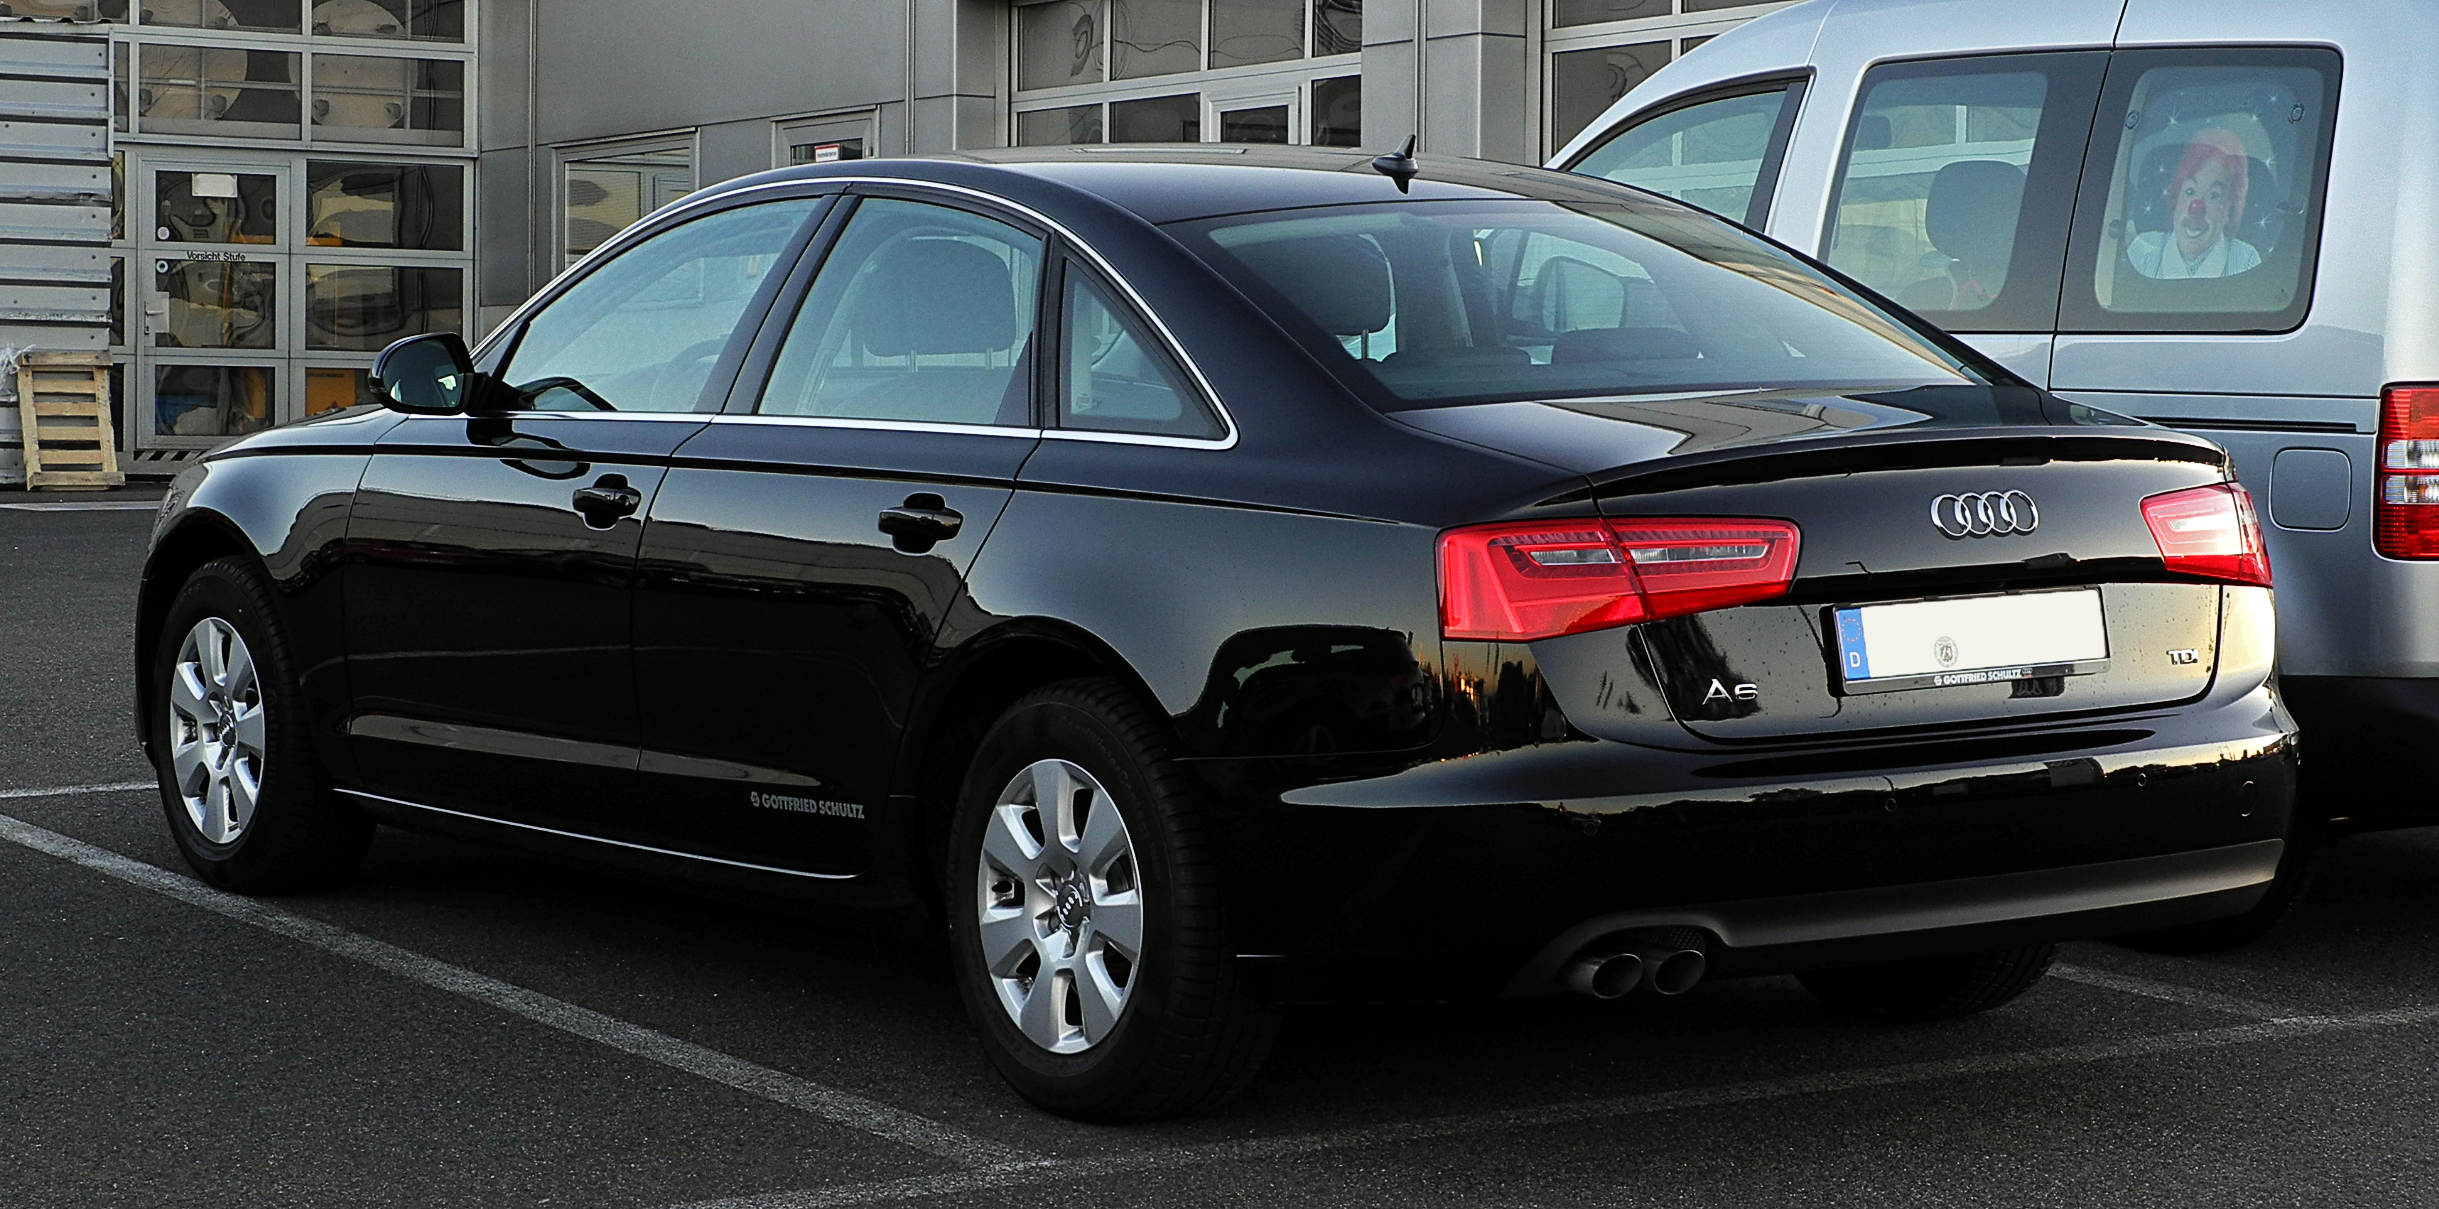 Audi A6 2019 Exterior Rear Side View